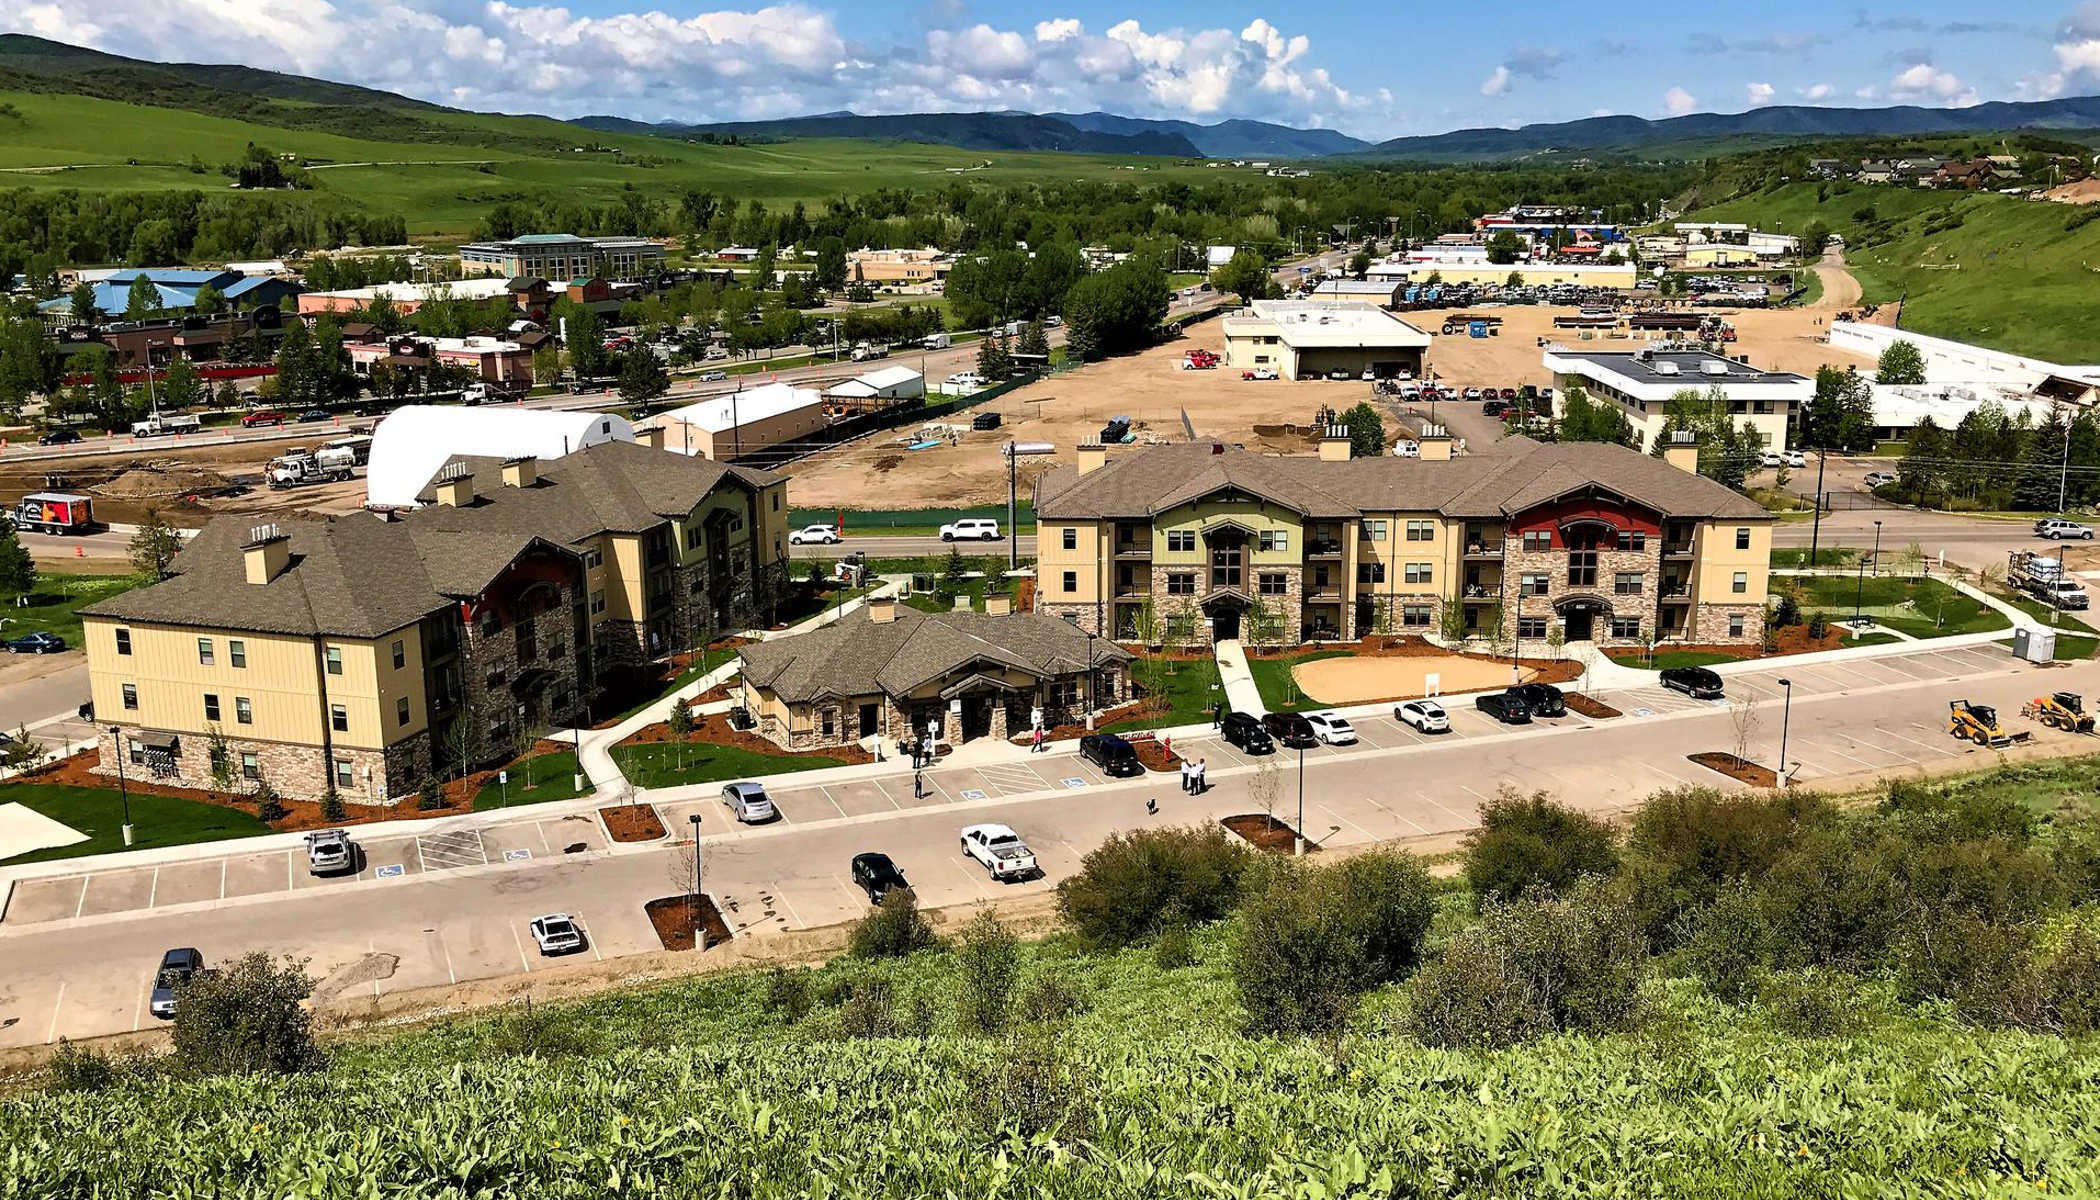 Aerial view of our neighborhood at The Reserves at Steamboat Springs in Steamboat Springs, CO